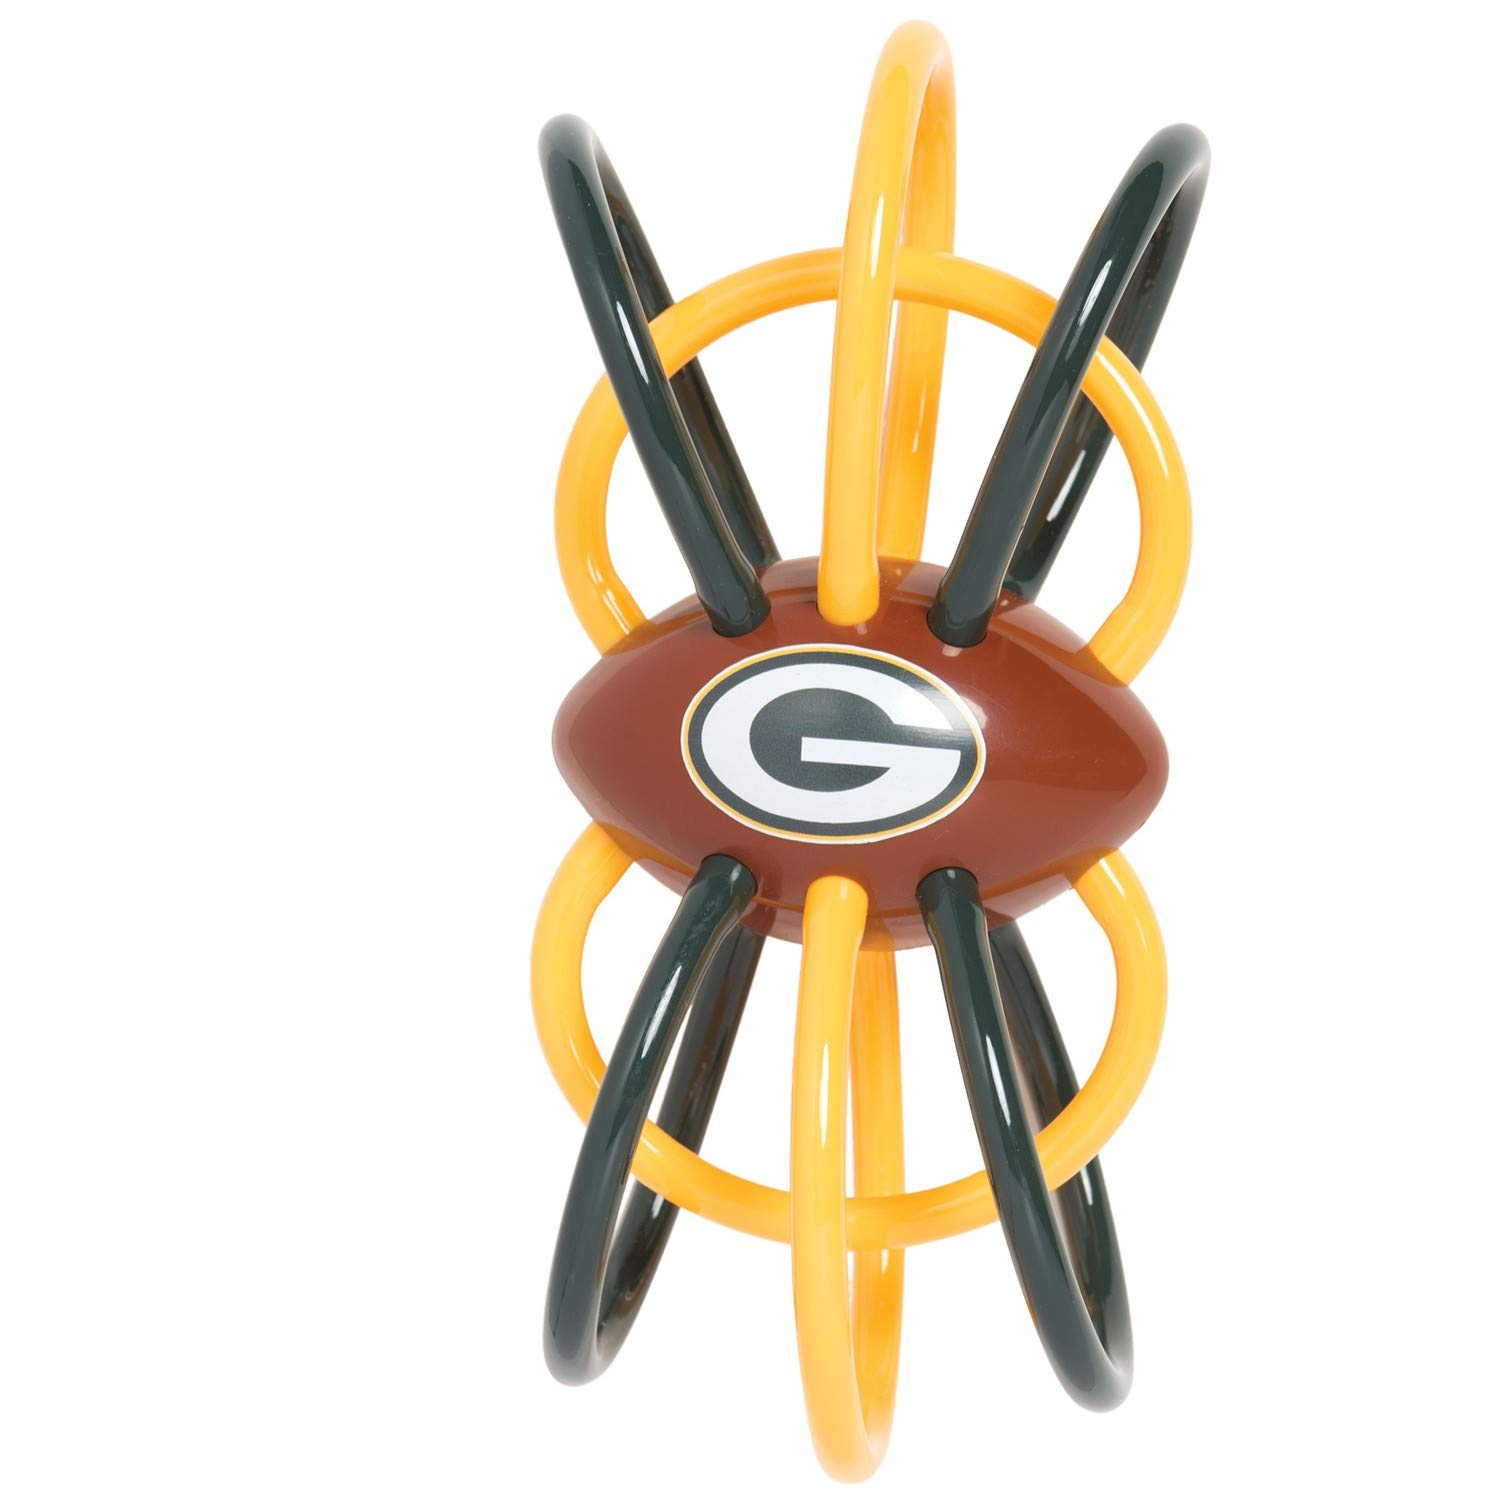 NFL Green Bay Packers Unisex GBP440Teether//Rattle See Description Dreme Corp See Description Green Bay Packers